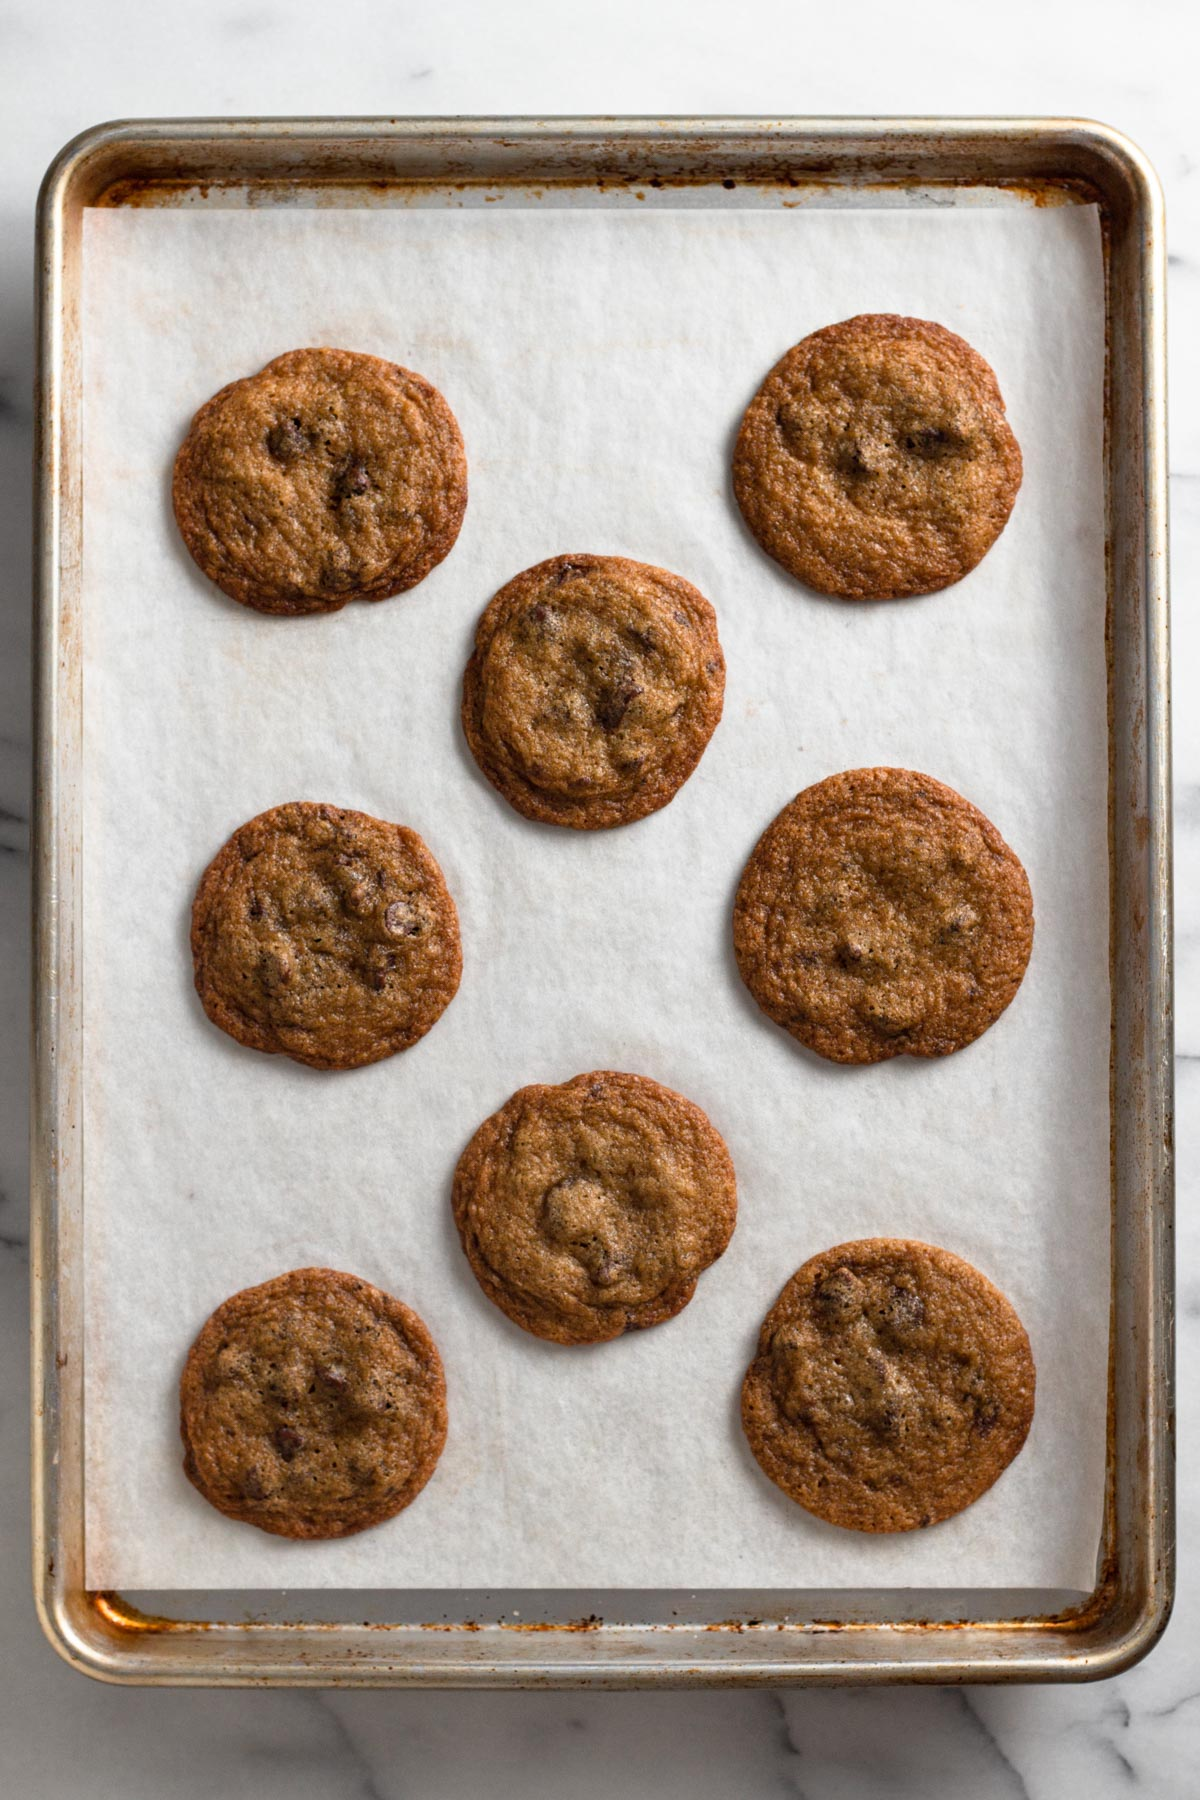 overhead view of perfectly round baked chocolate chip cookies on a baking sheet